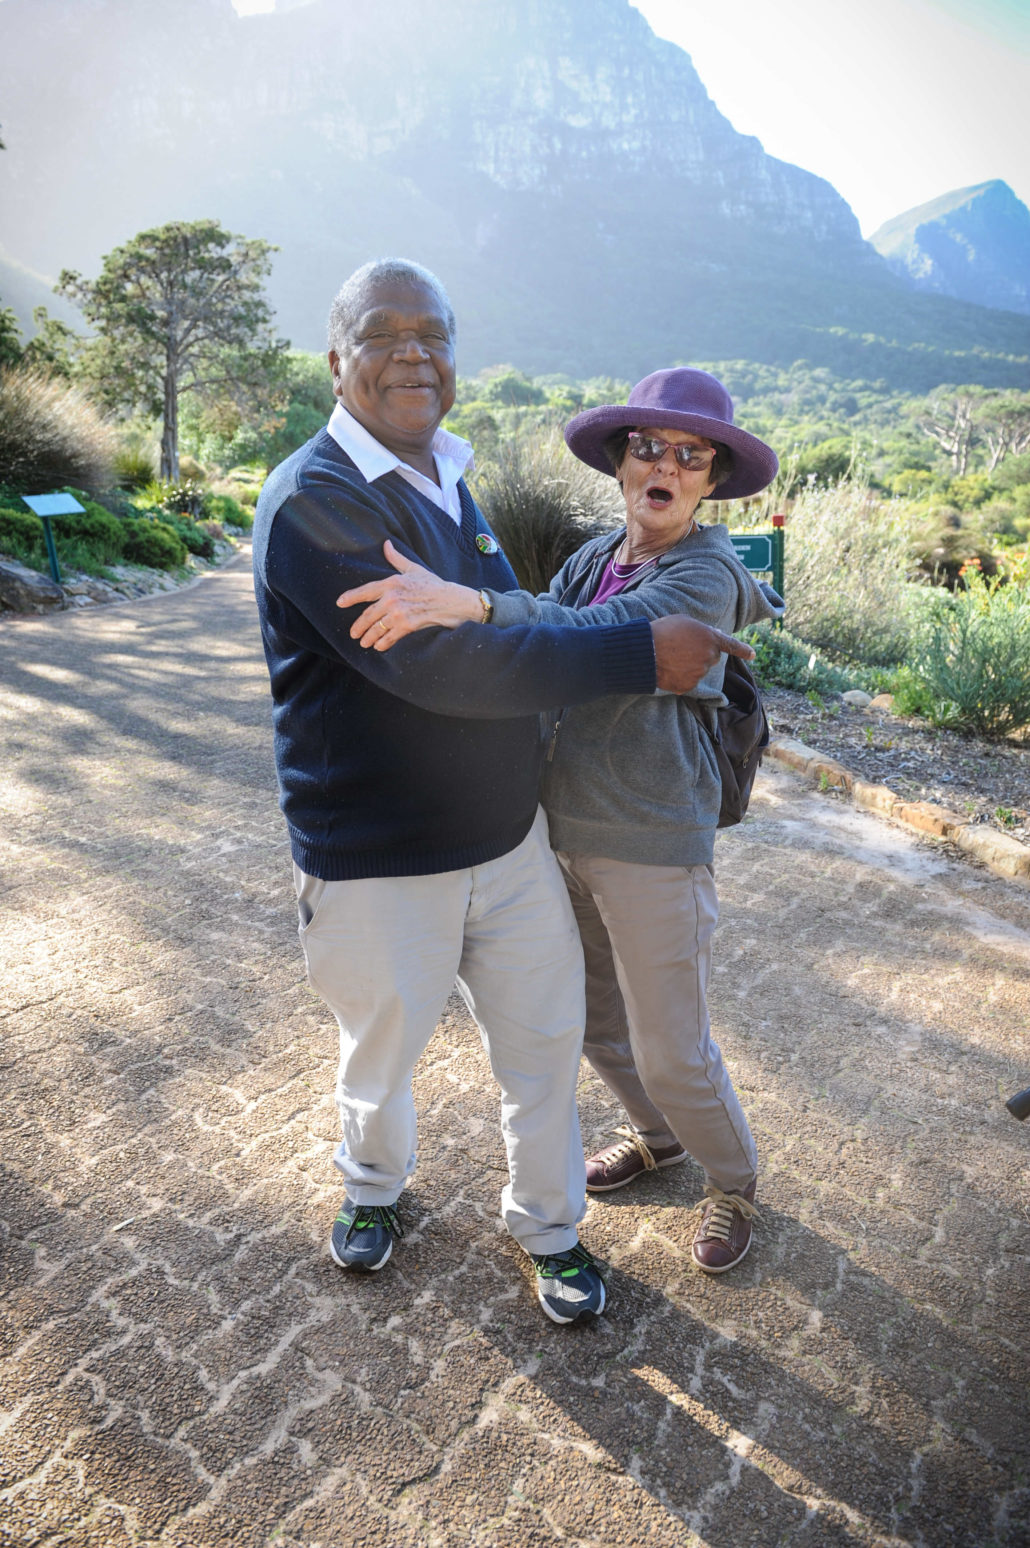 Andrew Phillip Jacobs, our guide for this day and 40-year employee at Kirstenbosch National Botanical Garden, engages with a volunteer who frequents the park